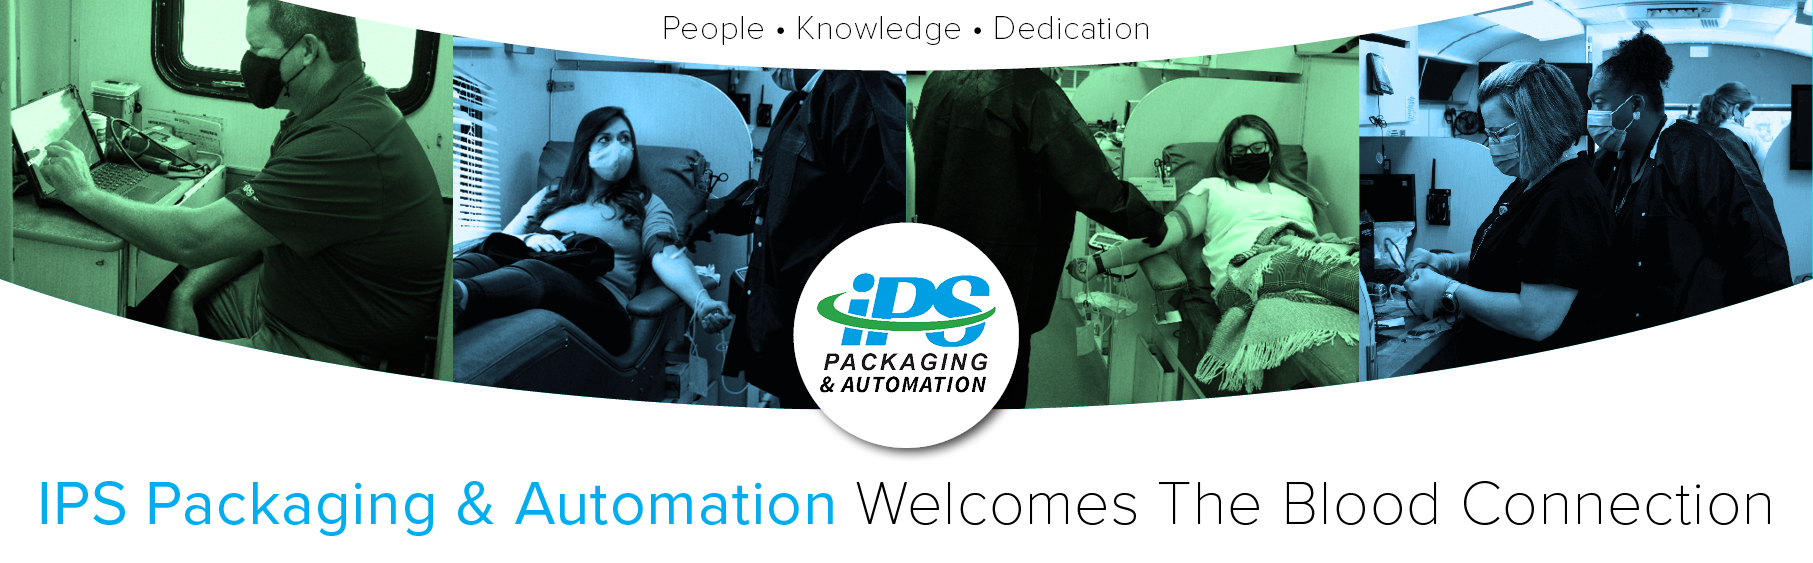 Press Release: IPS Packaging & Automation Welcomes the Blood Connection